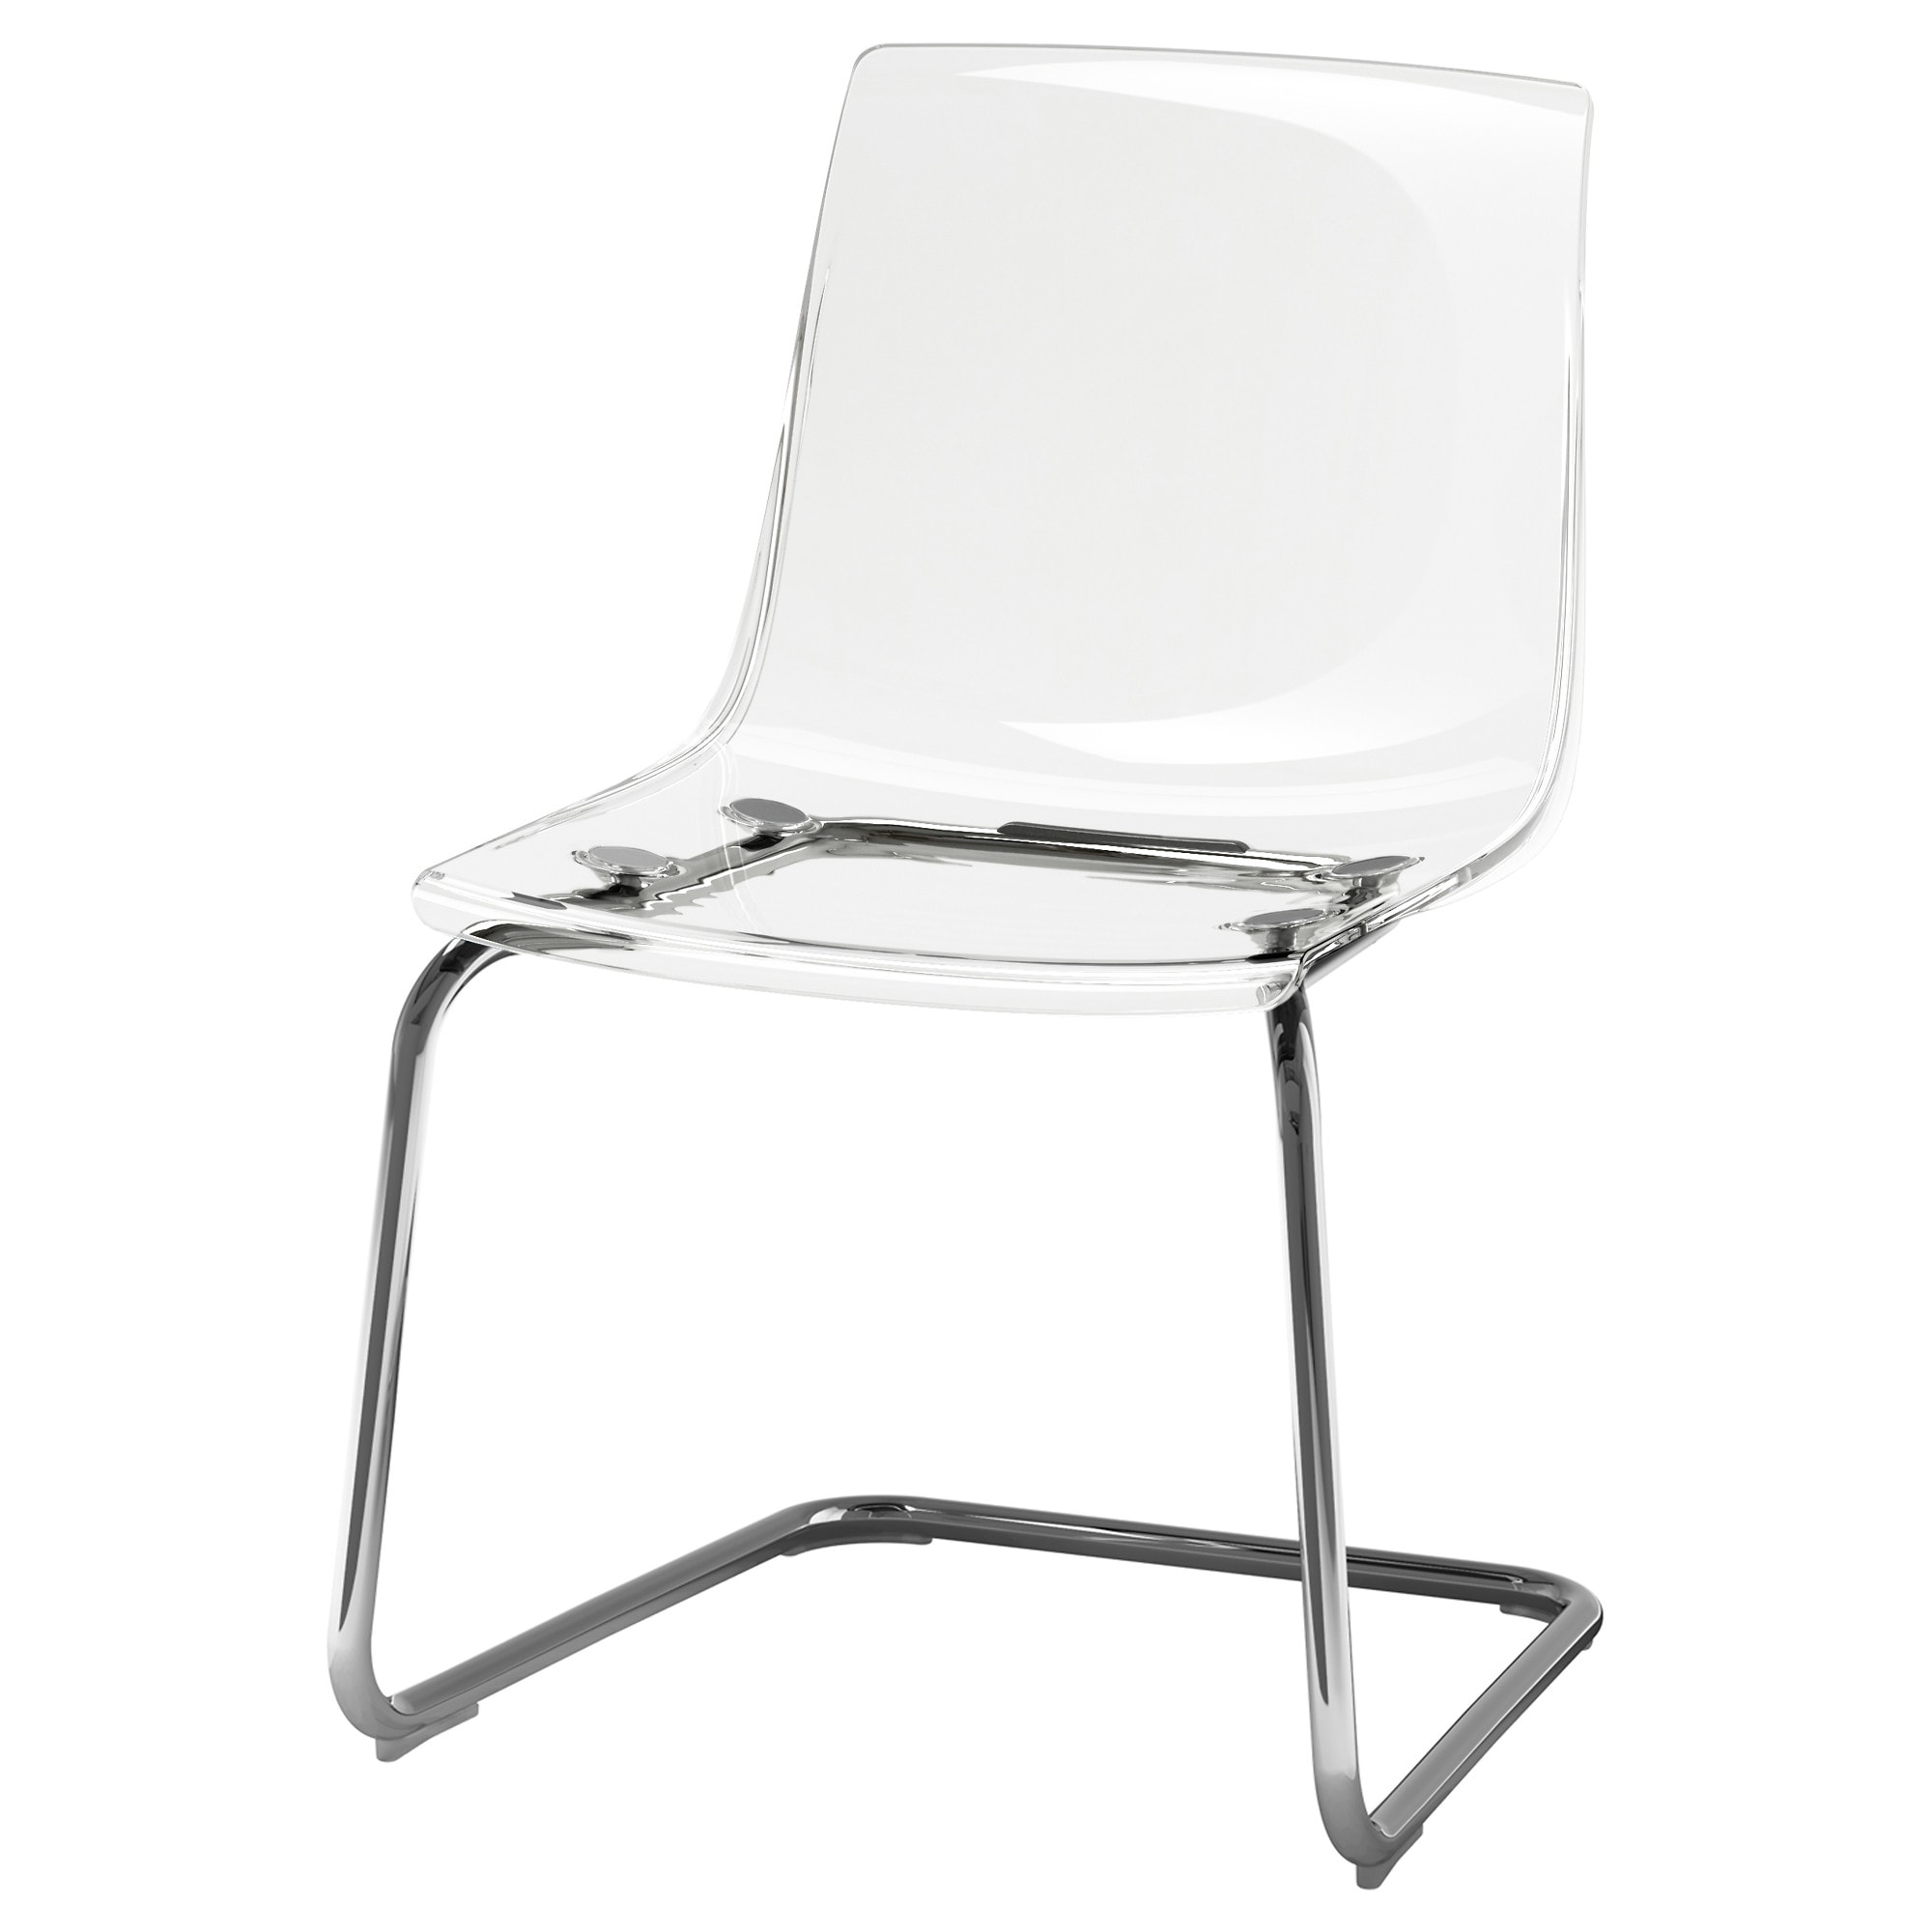 amazon dp mel lexmod molded armchair kitchen in rocker plastic home chair ca chairs white